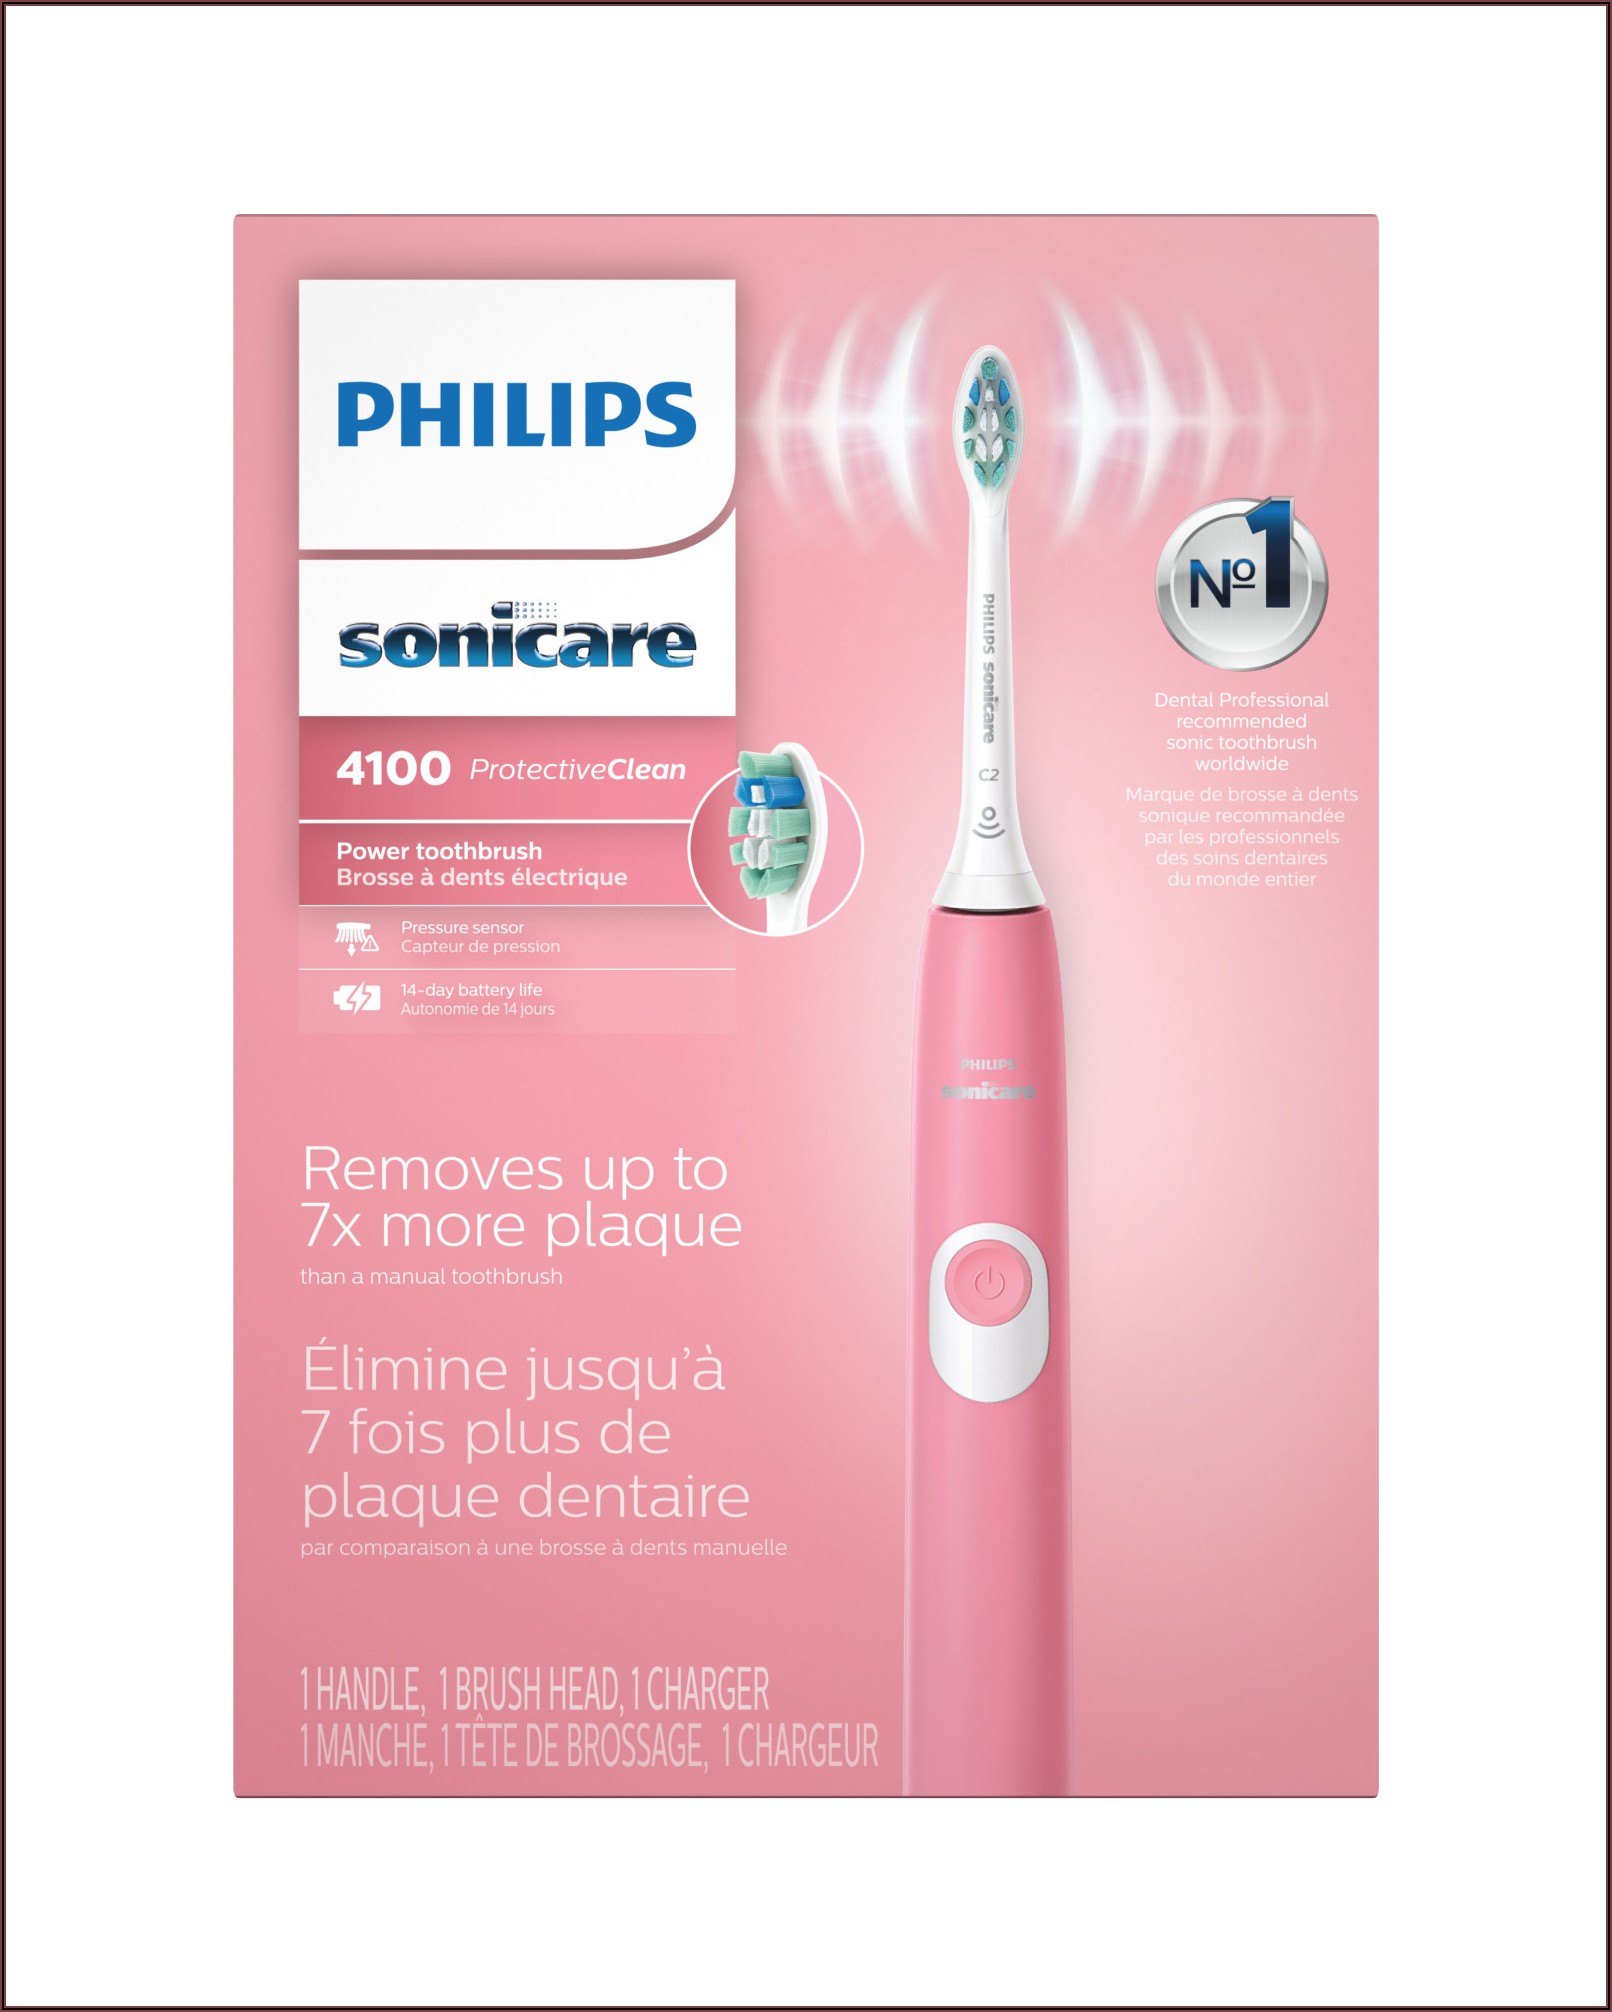 Philips Sonicare 5100 Rebate Form